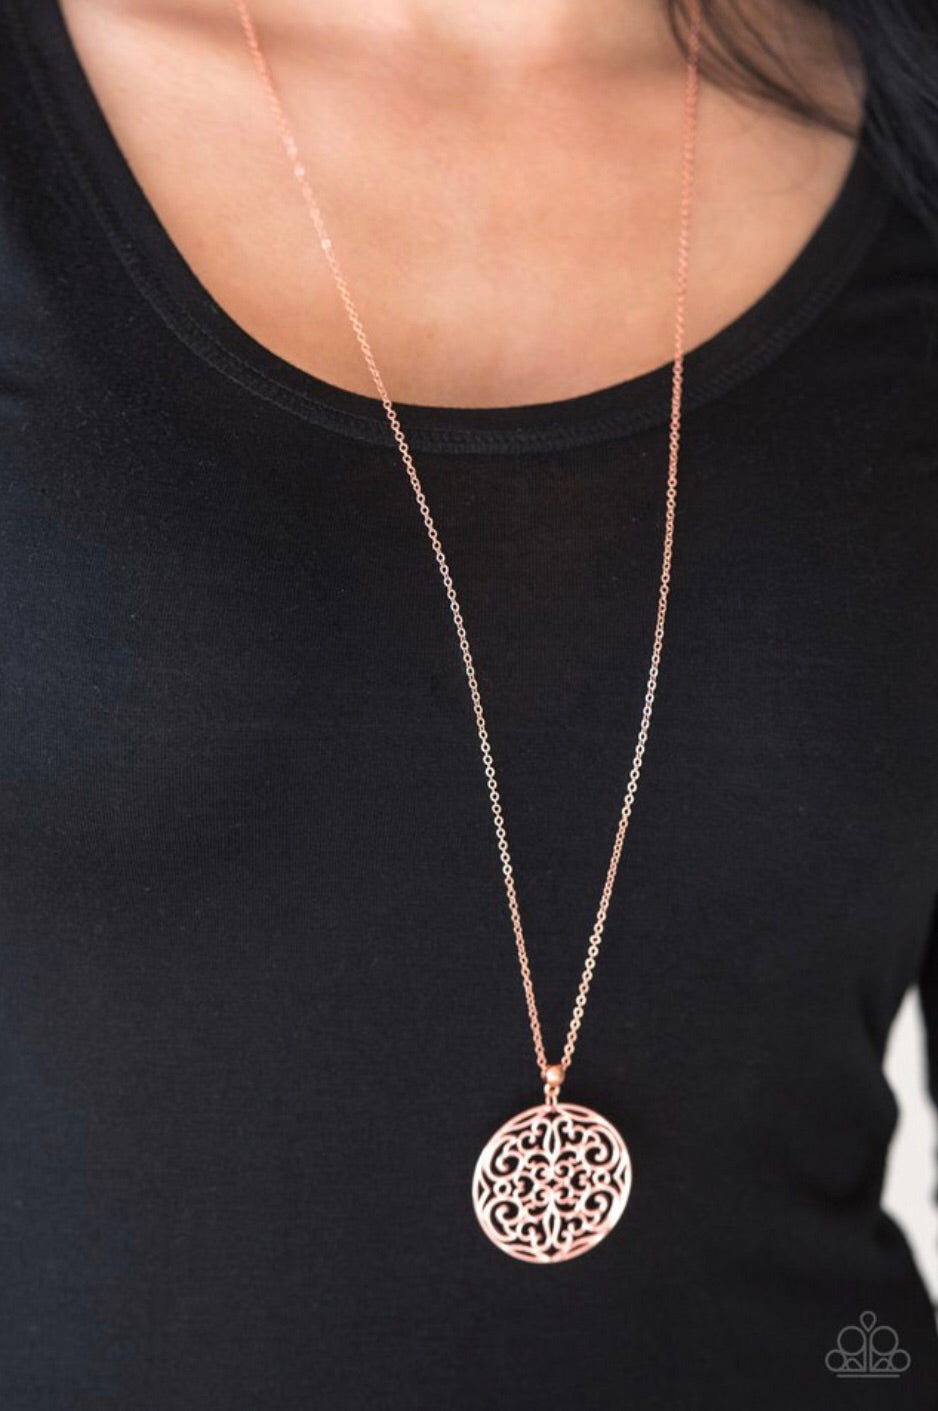 Paparazzi Jewelry Necklace All About Me-dallion - Copper